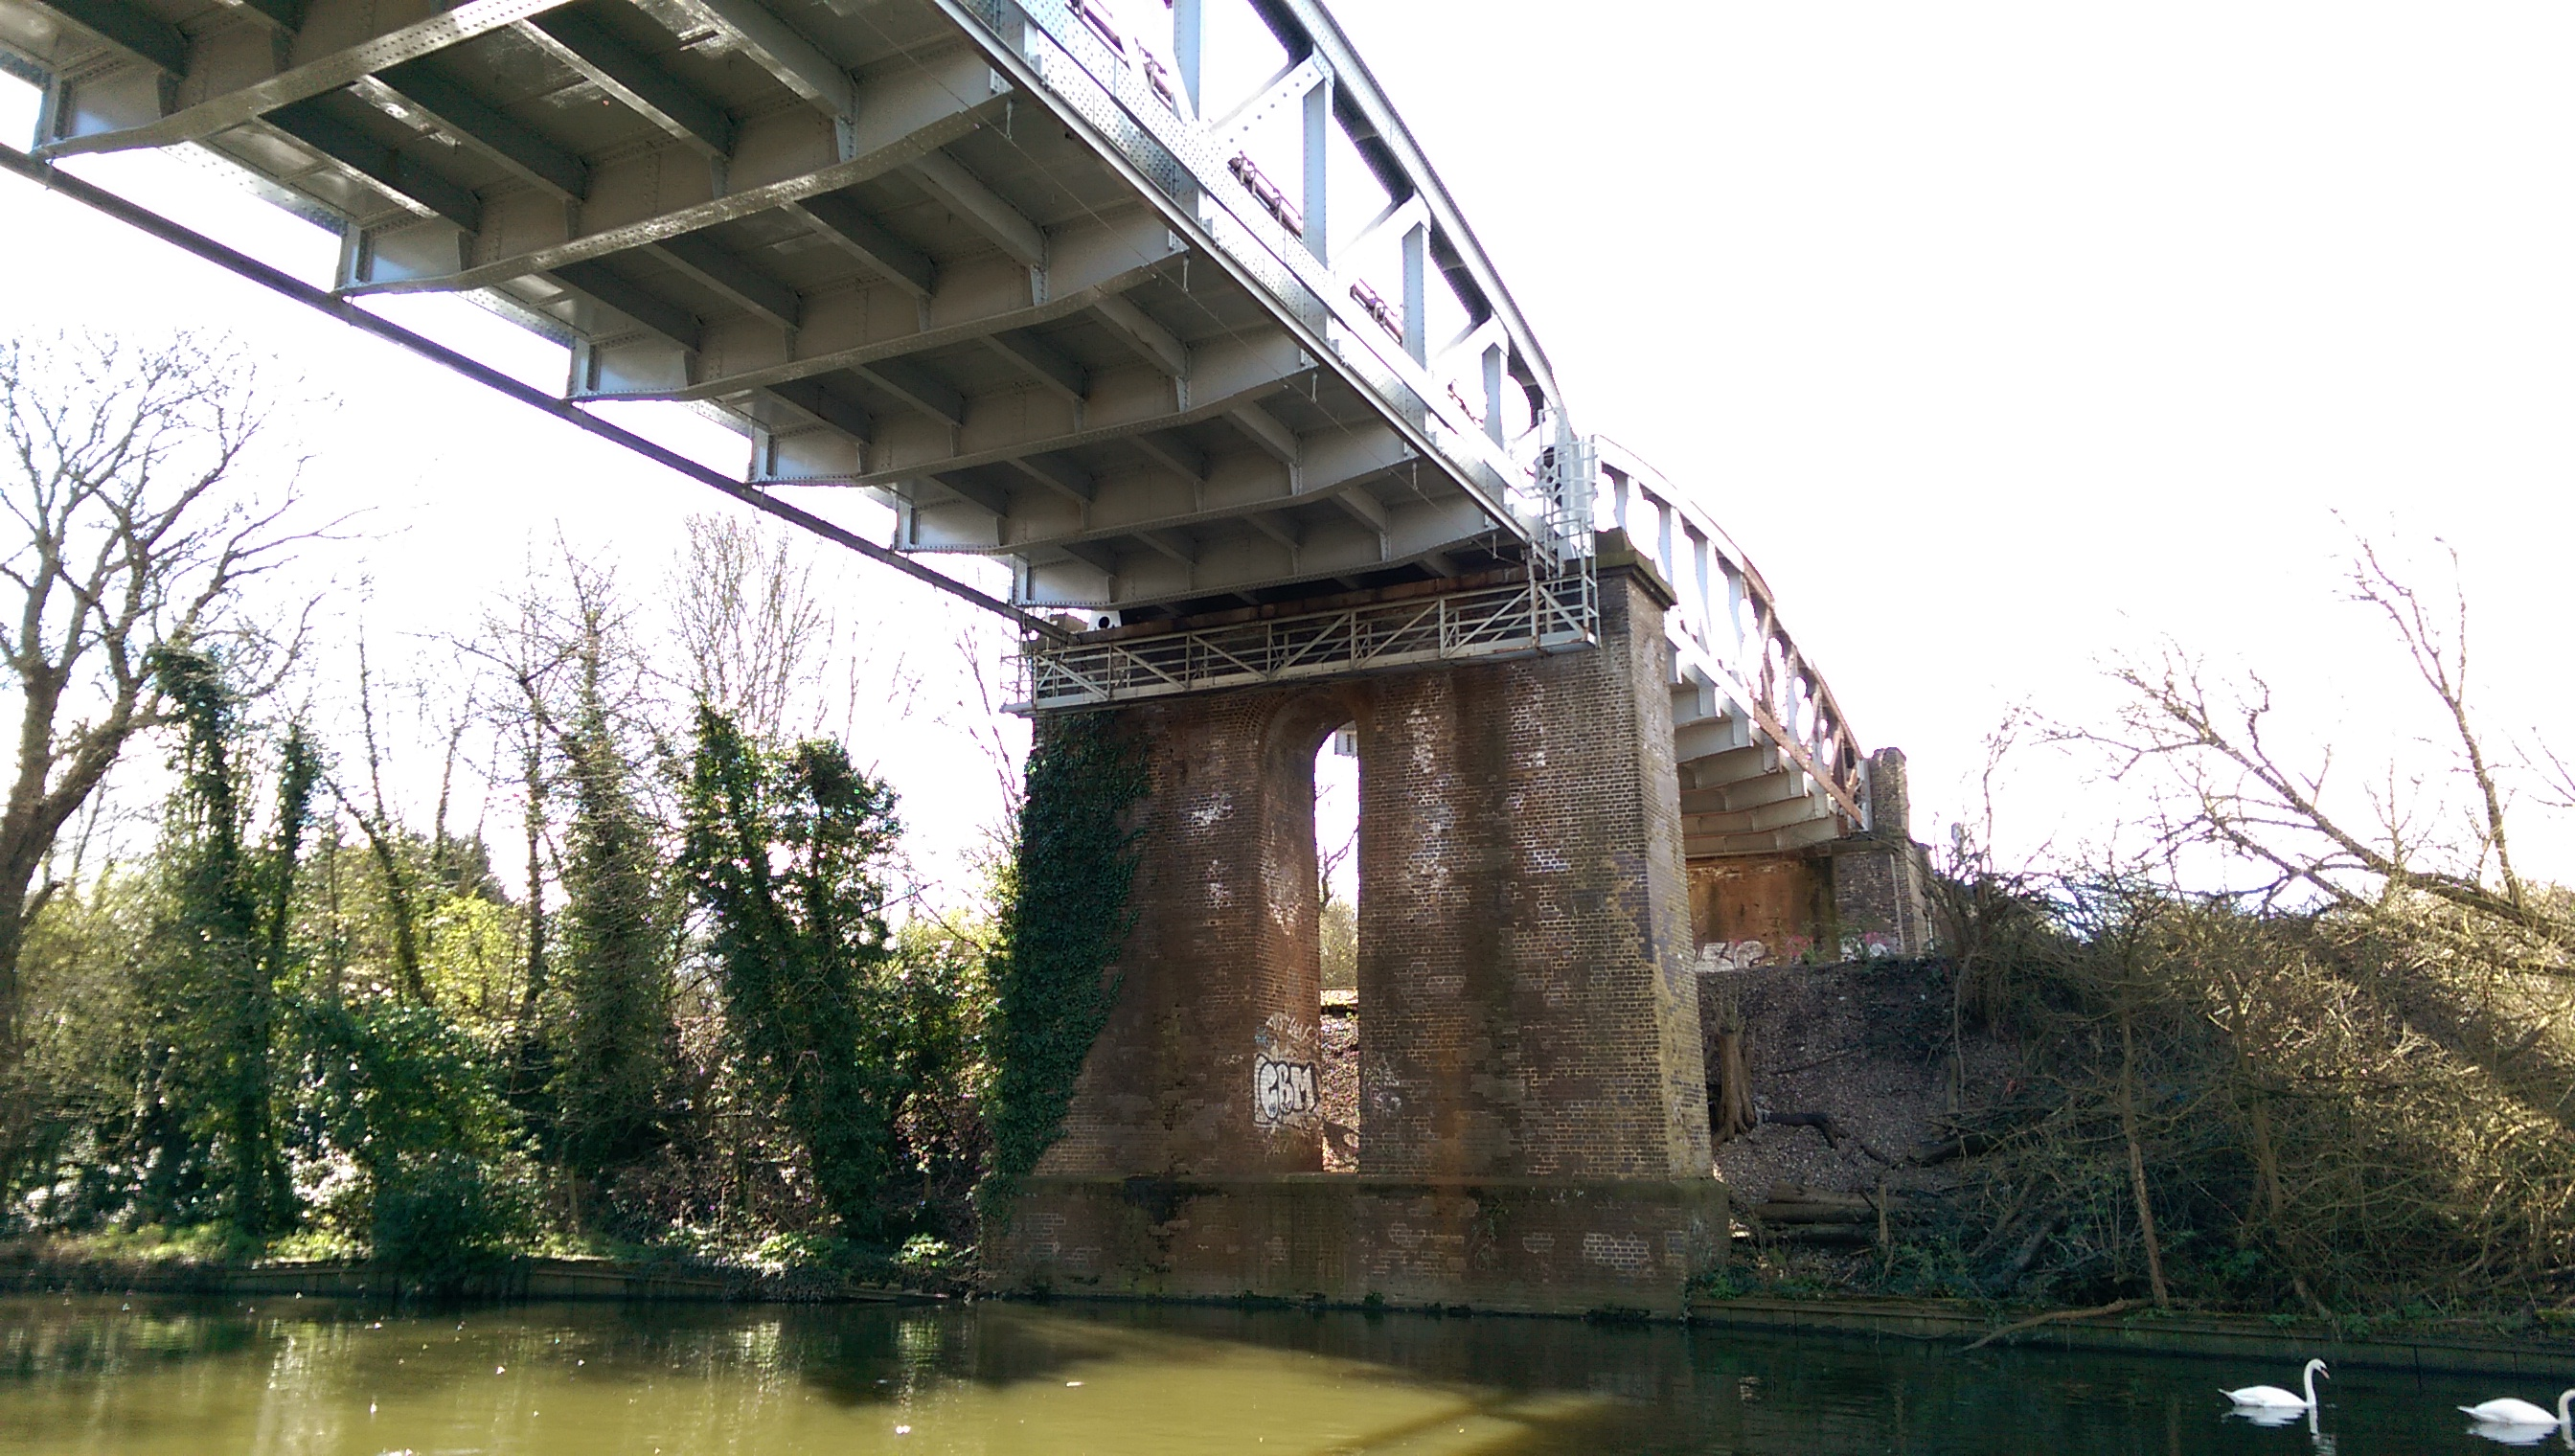 underbridge-normal-htc-one-m8.jpg